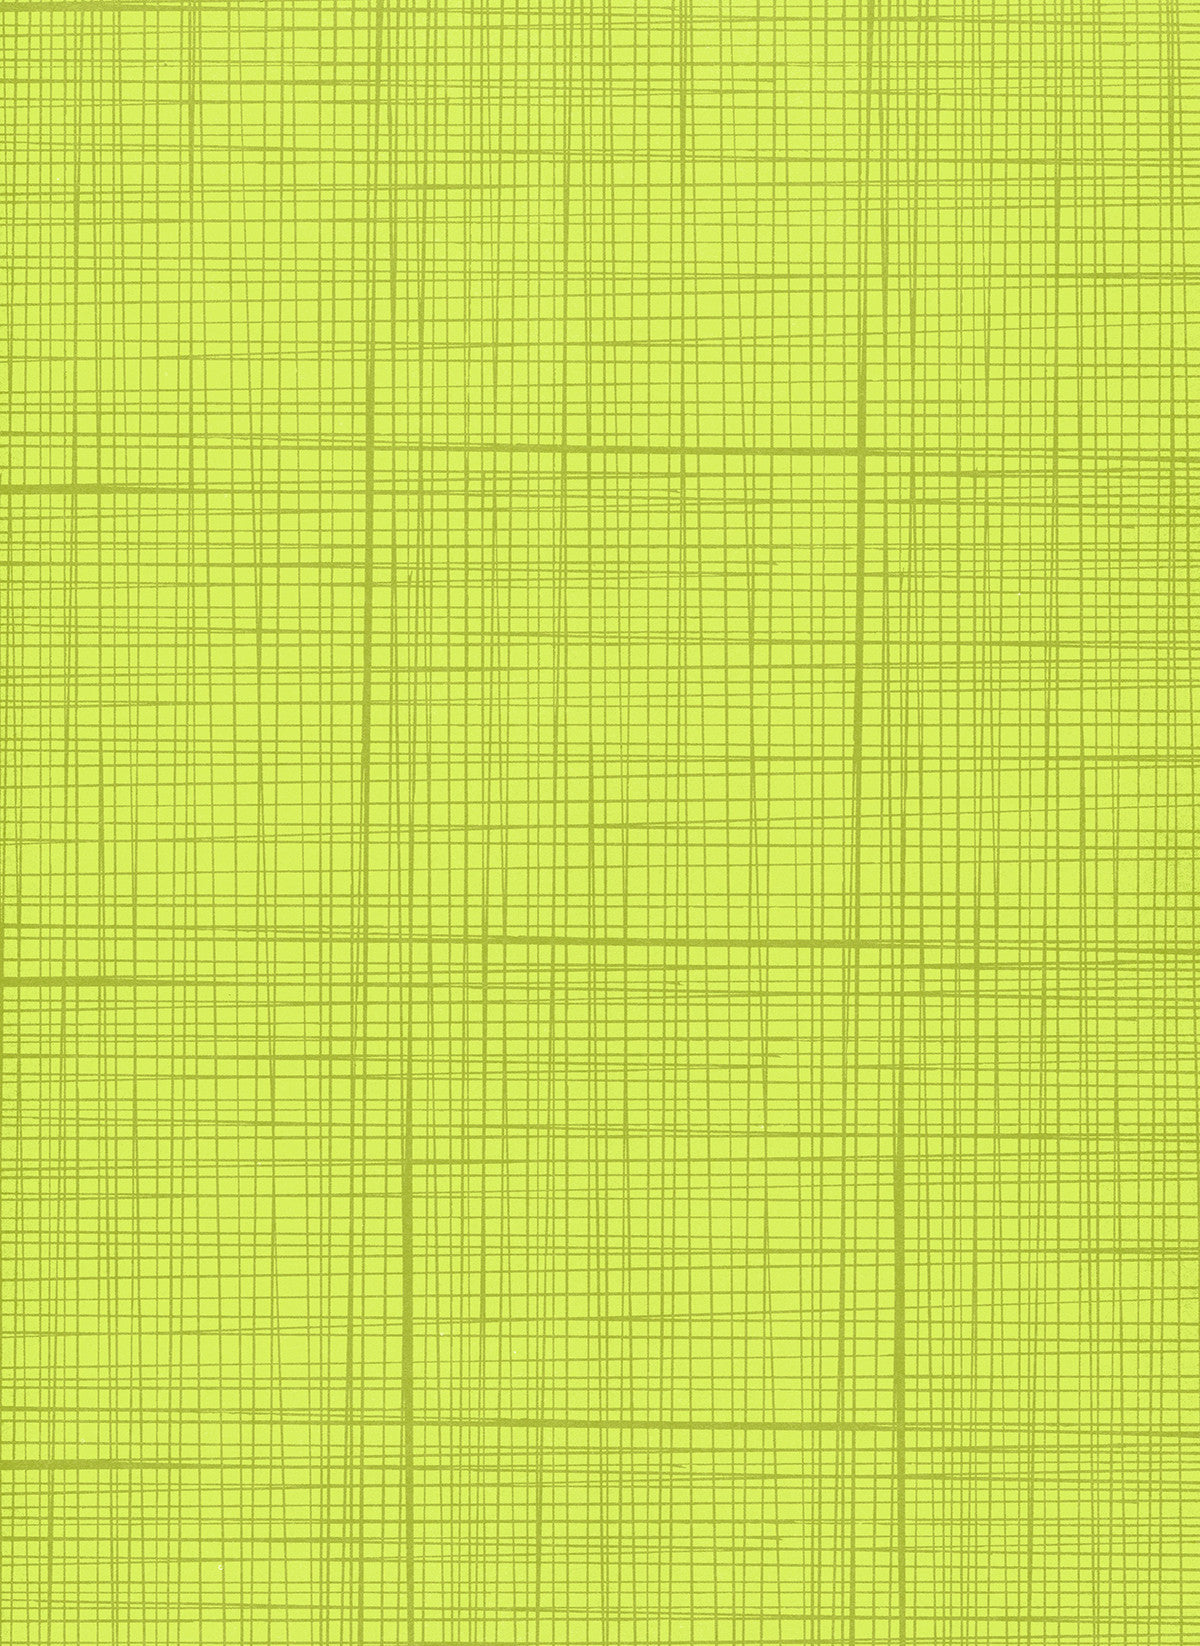 Scratches in Chartreuse Printed Photography Background / 9860